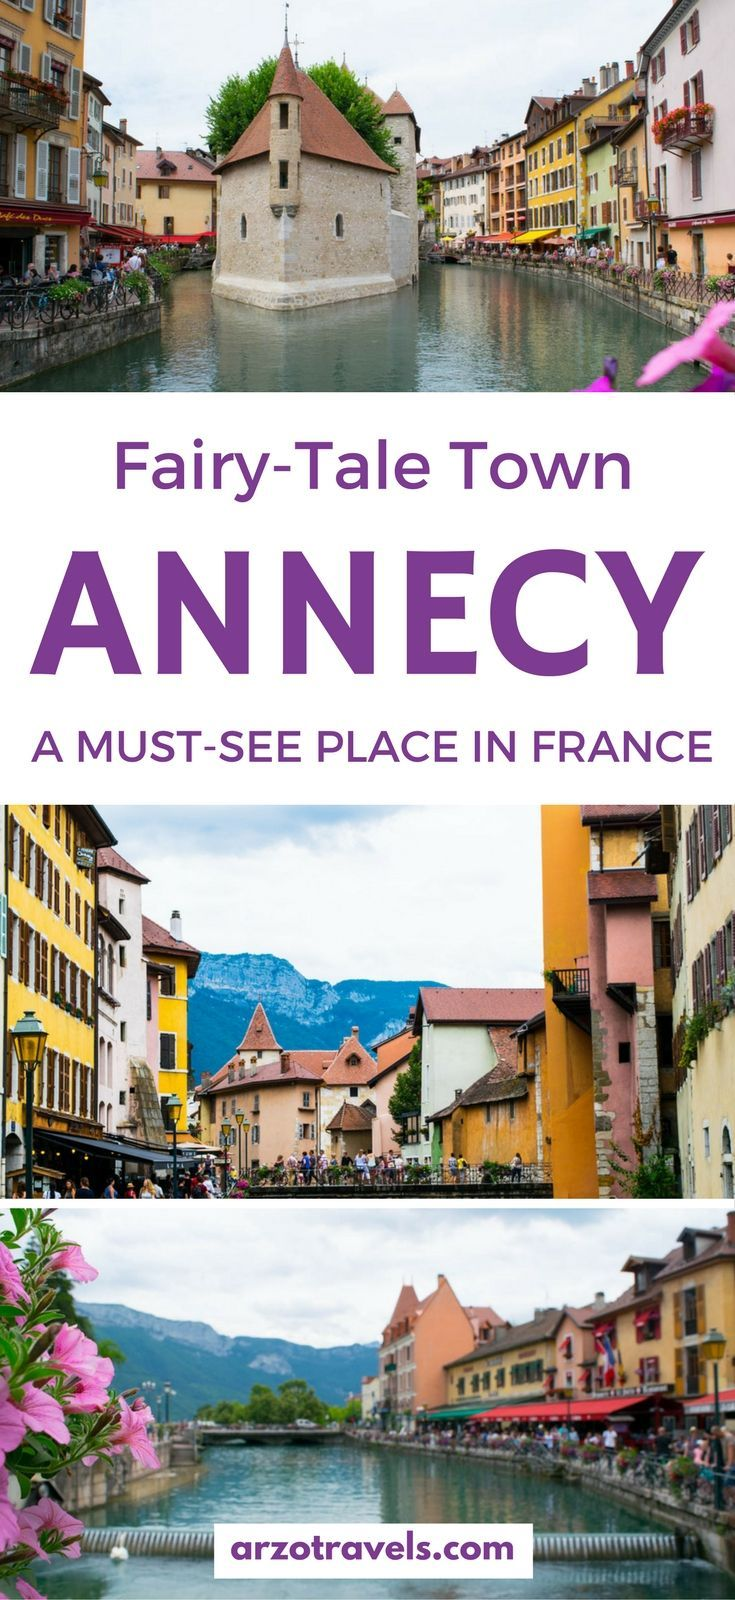 Annecy is a beautiful town in France, close to the Swiss boarder. Find out to spend a weekend in Annecy with the gorgeous, fairy-tale old town and the Lake Annecy.